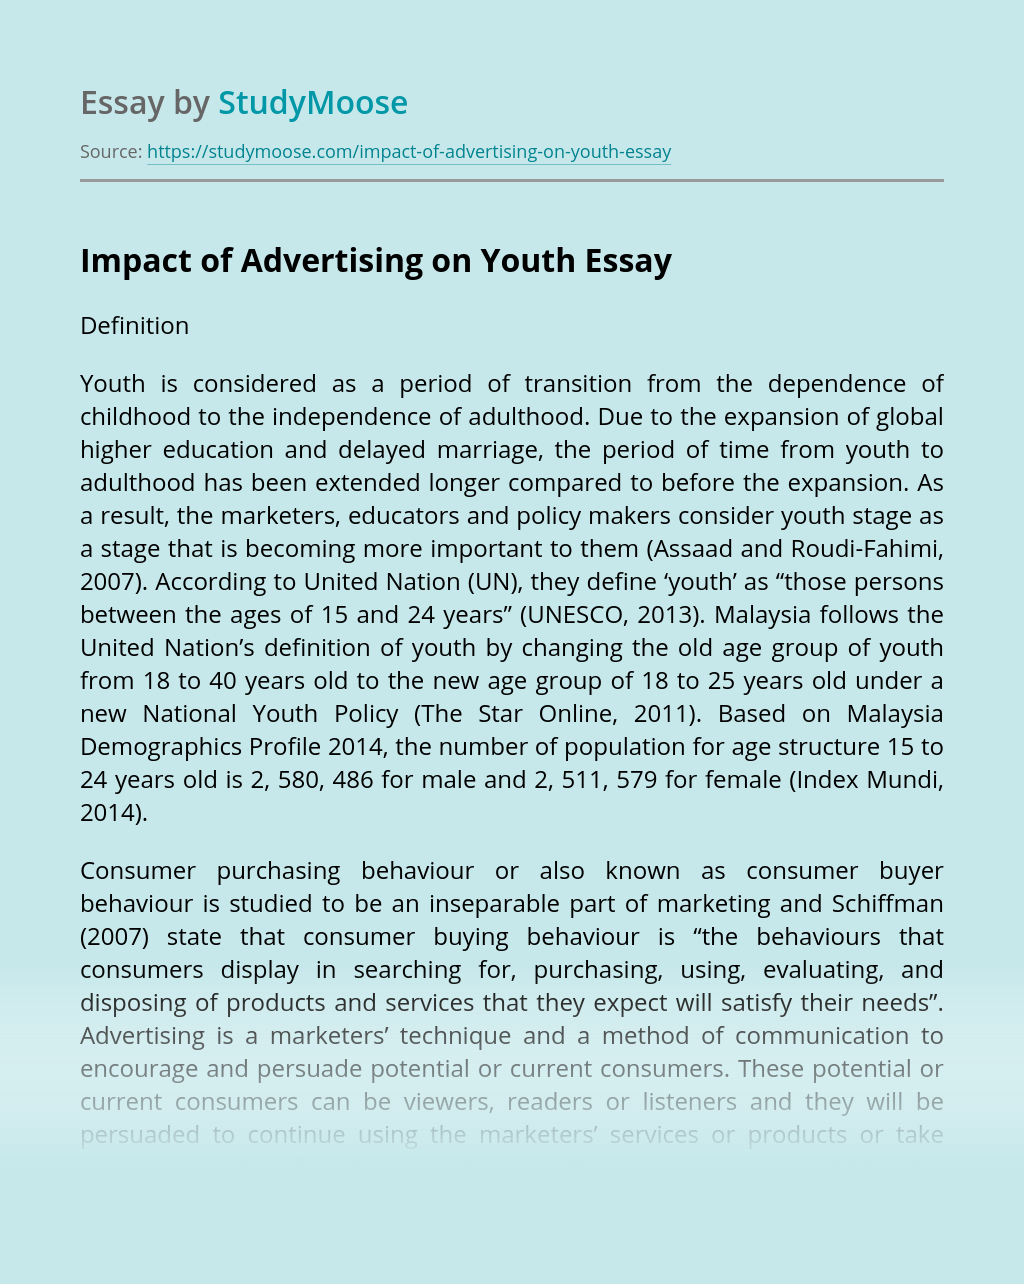 Impact of Advertising on Youth